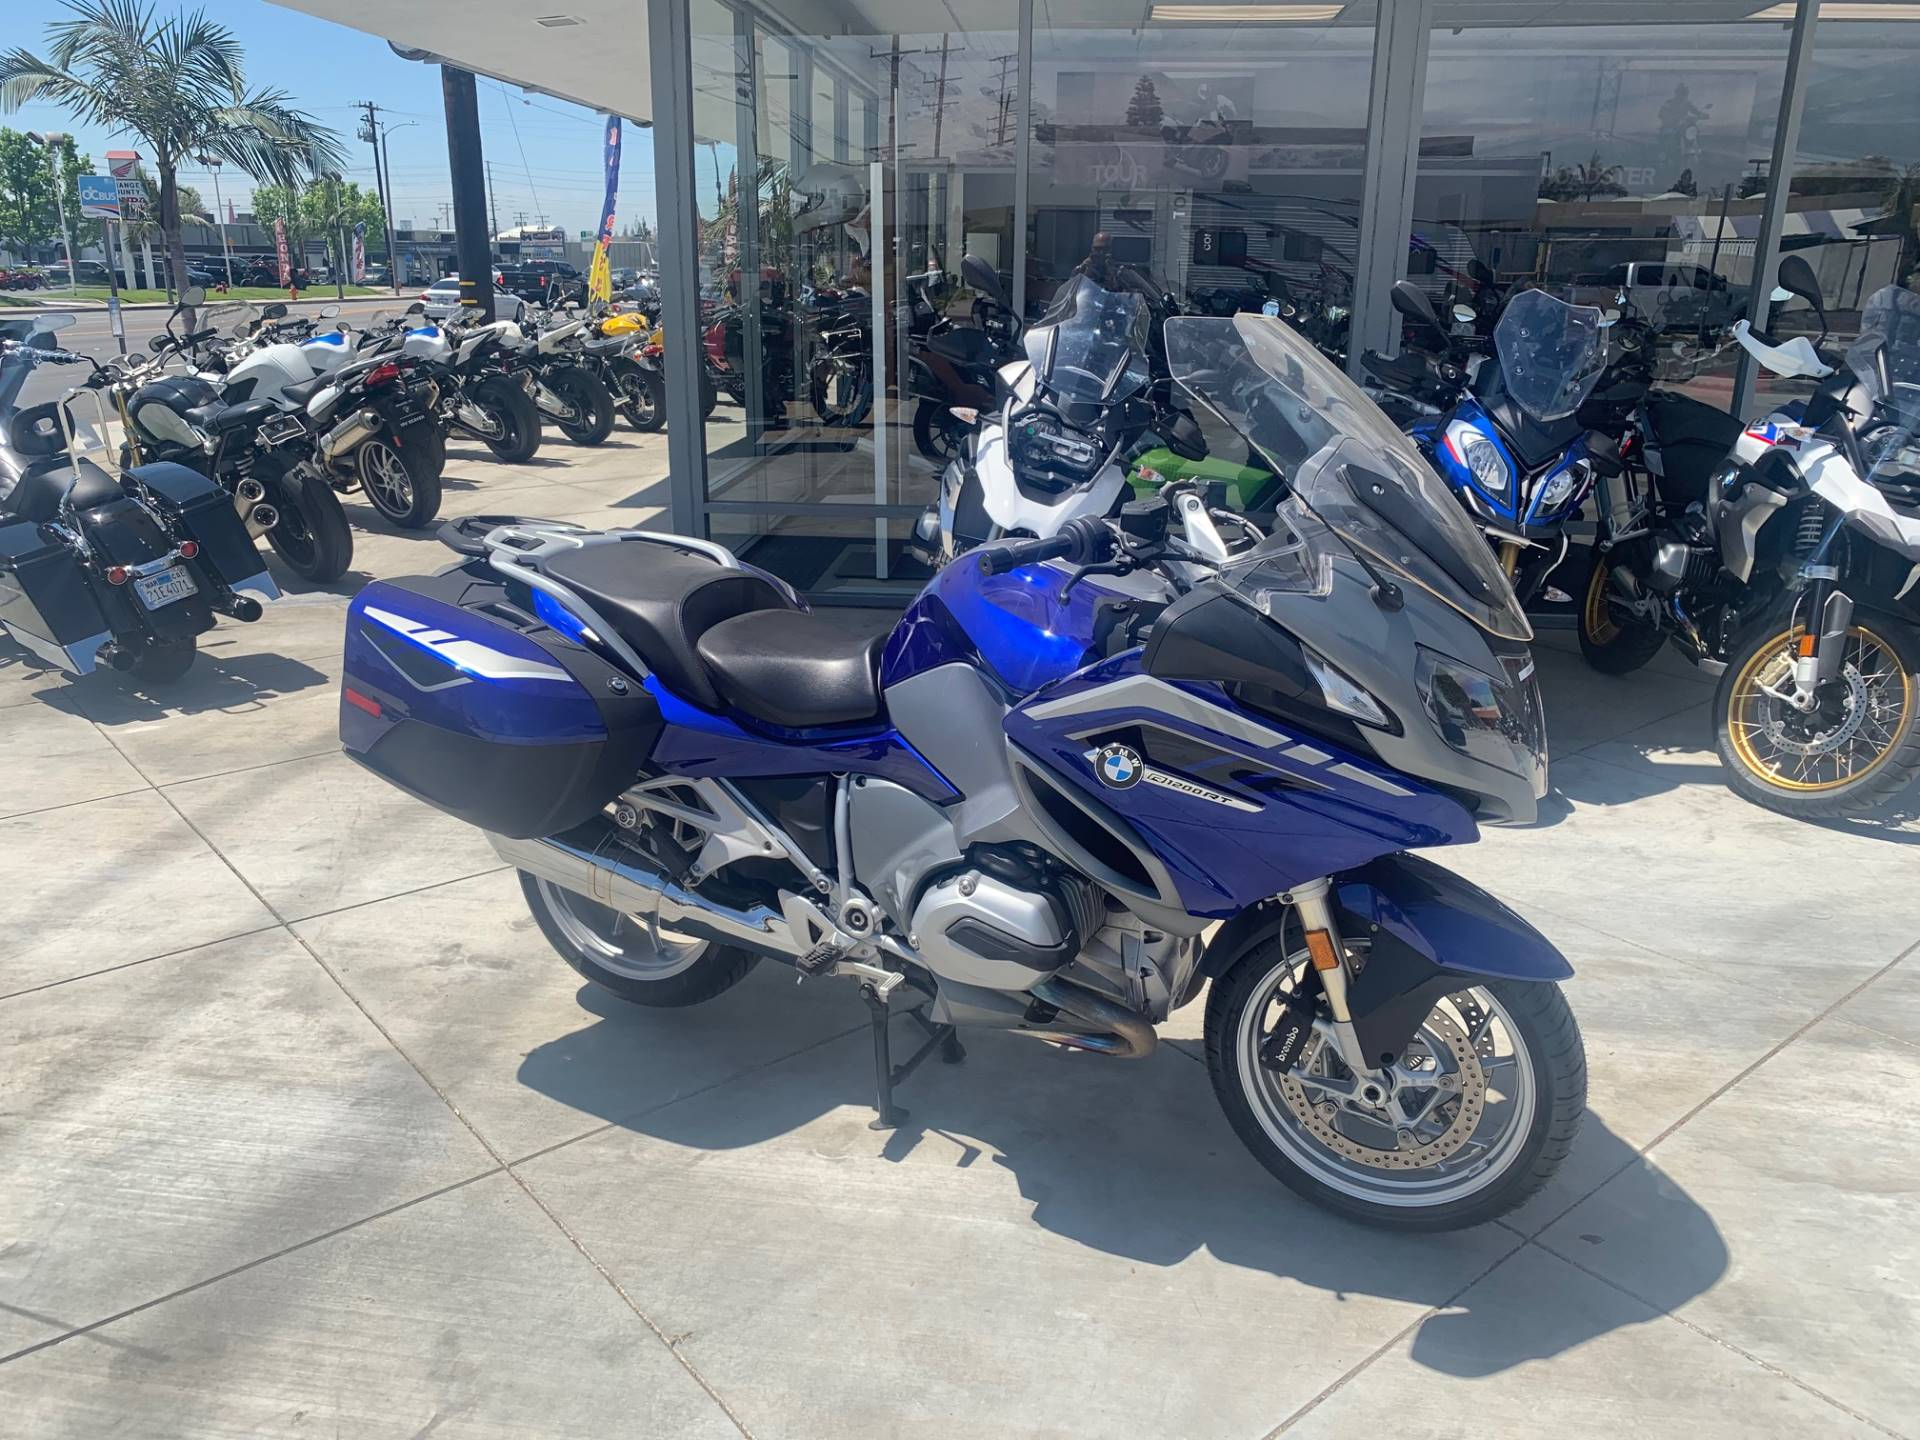 2016 BMW R 1200 RT in Orange, California - Photo 1